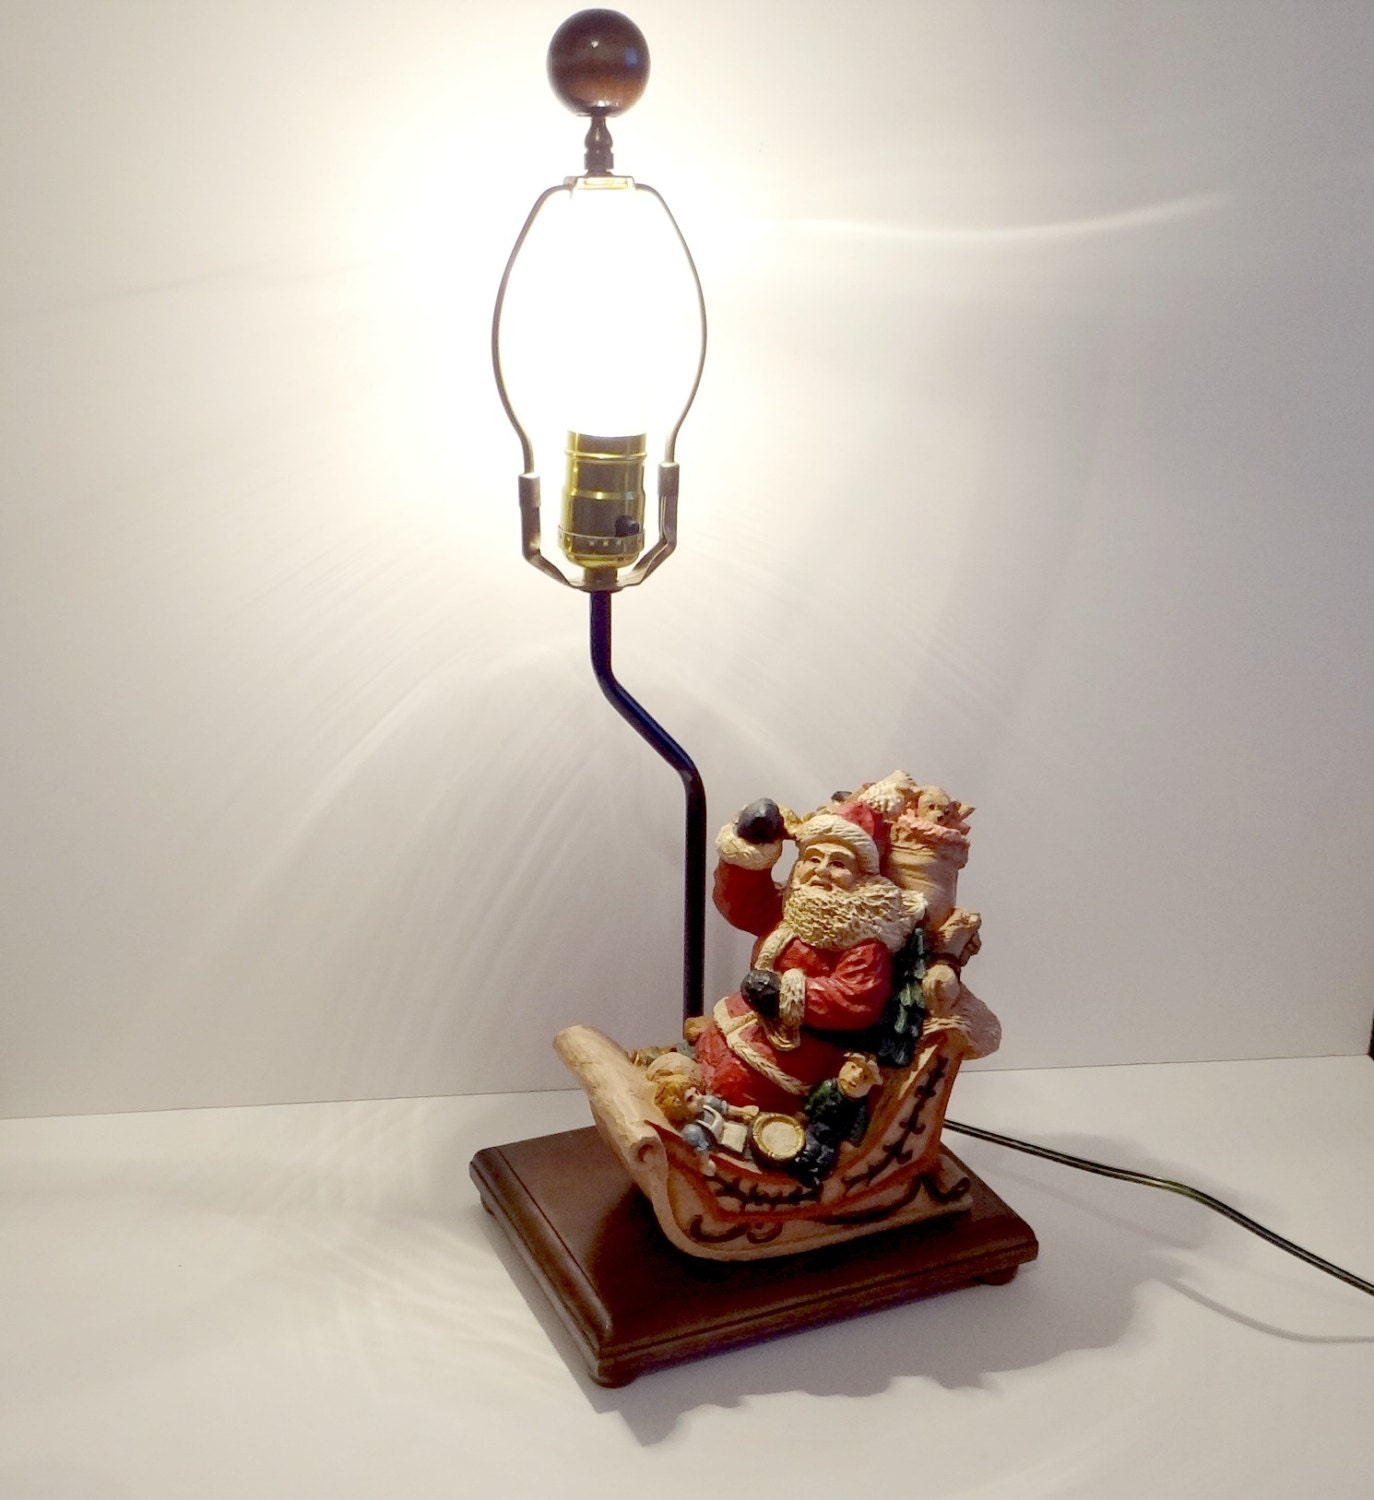 Vintage Santa Claus In Sleigh Christmas Table Lamp 1970s Home